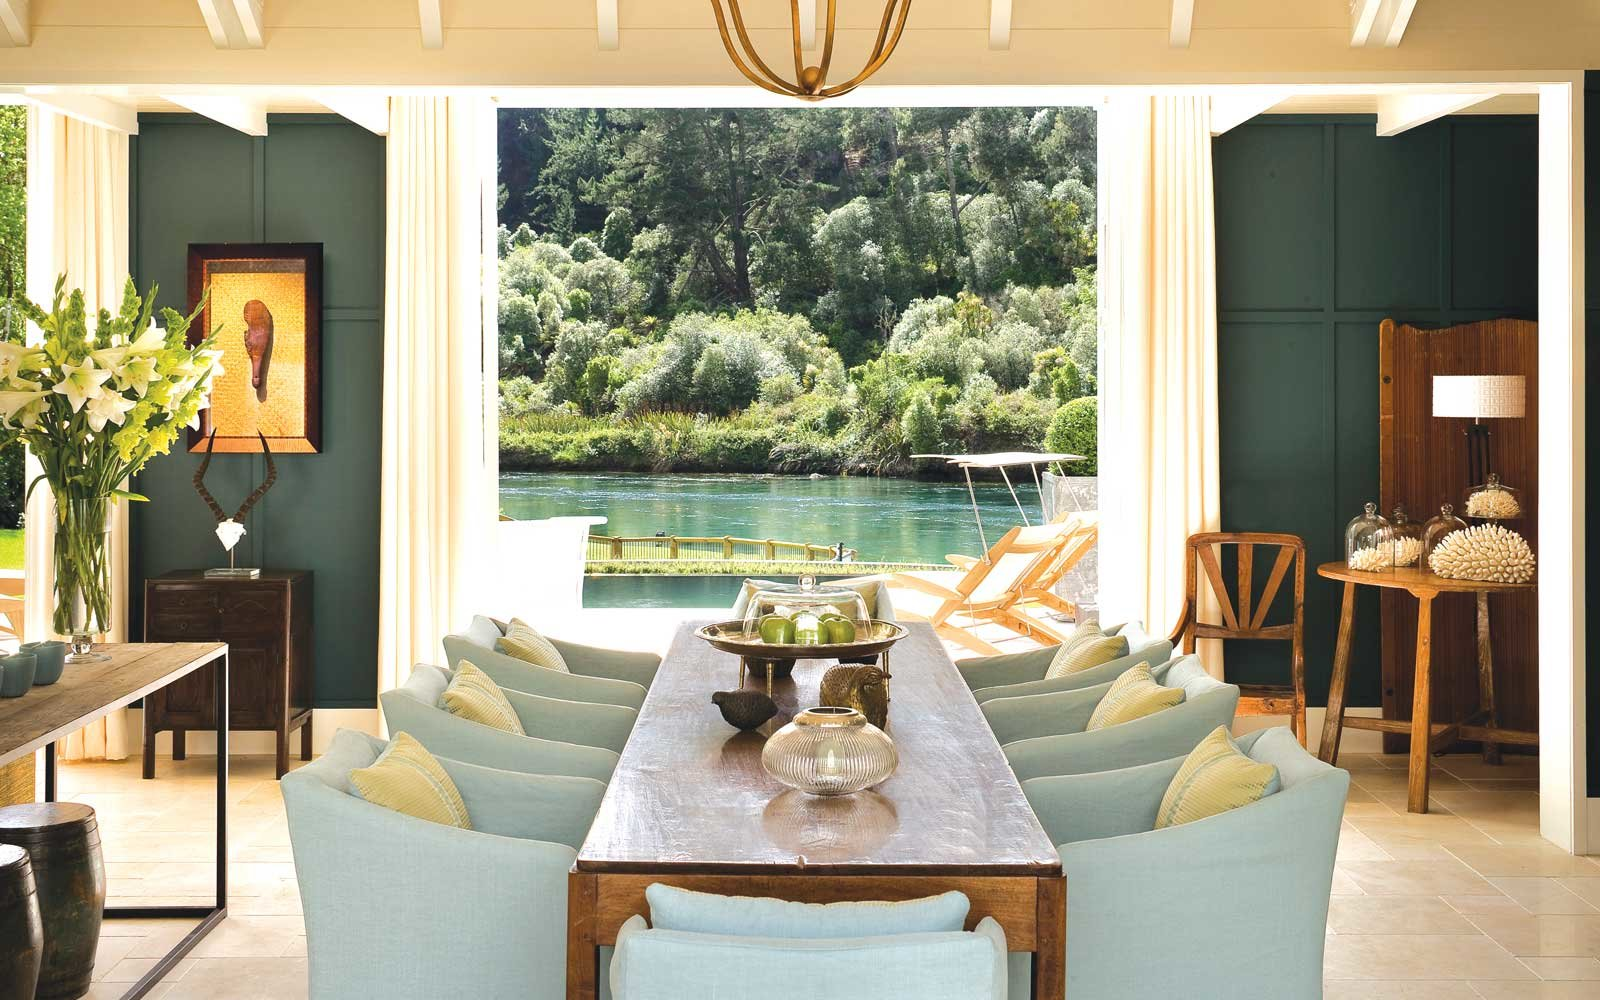 View of the river from the dining area at Huka Lodge